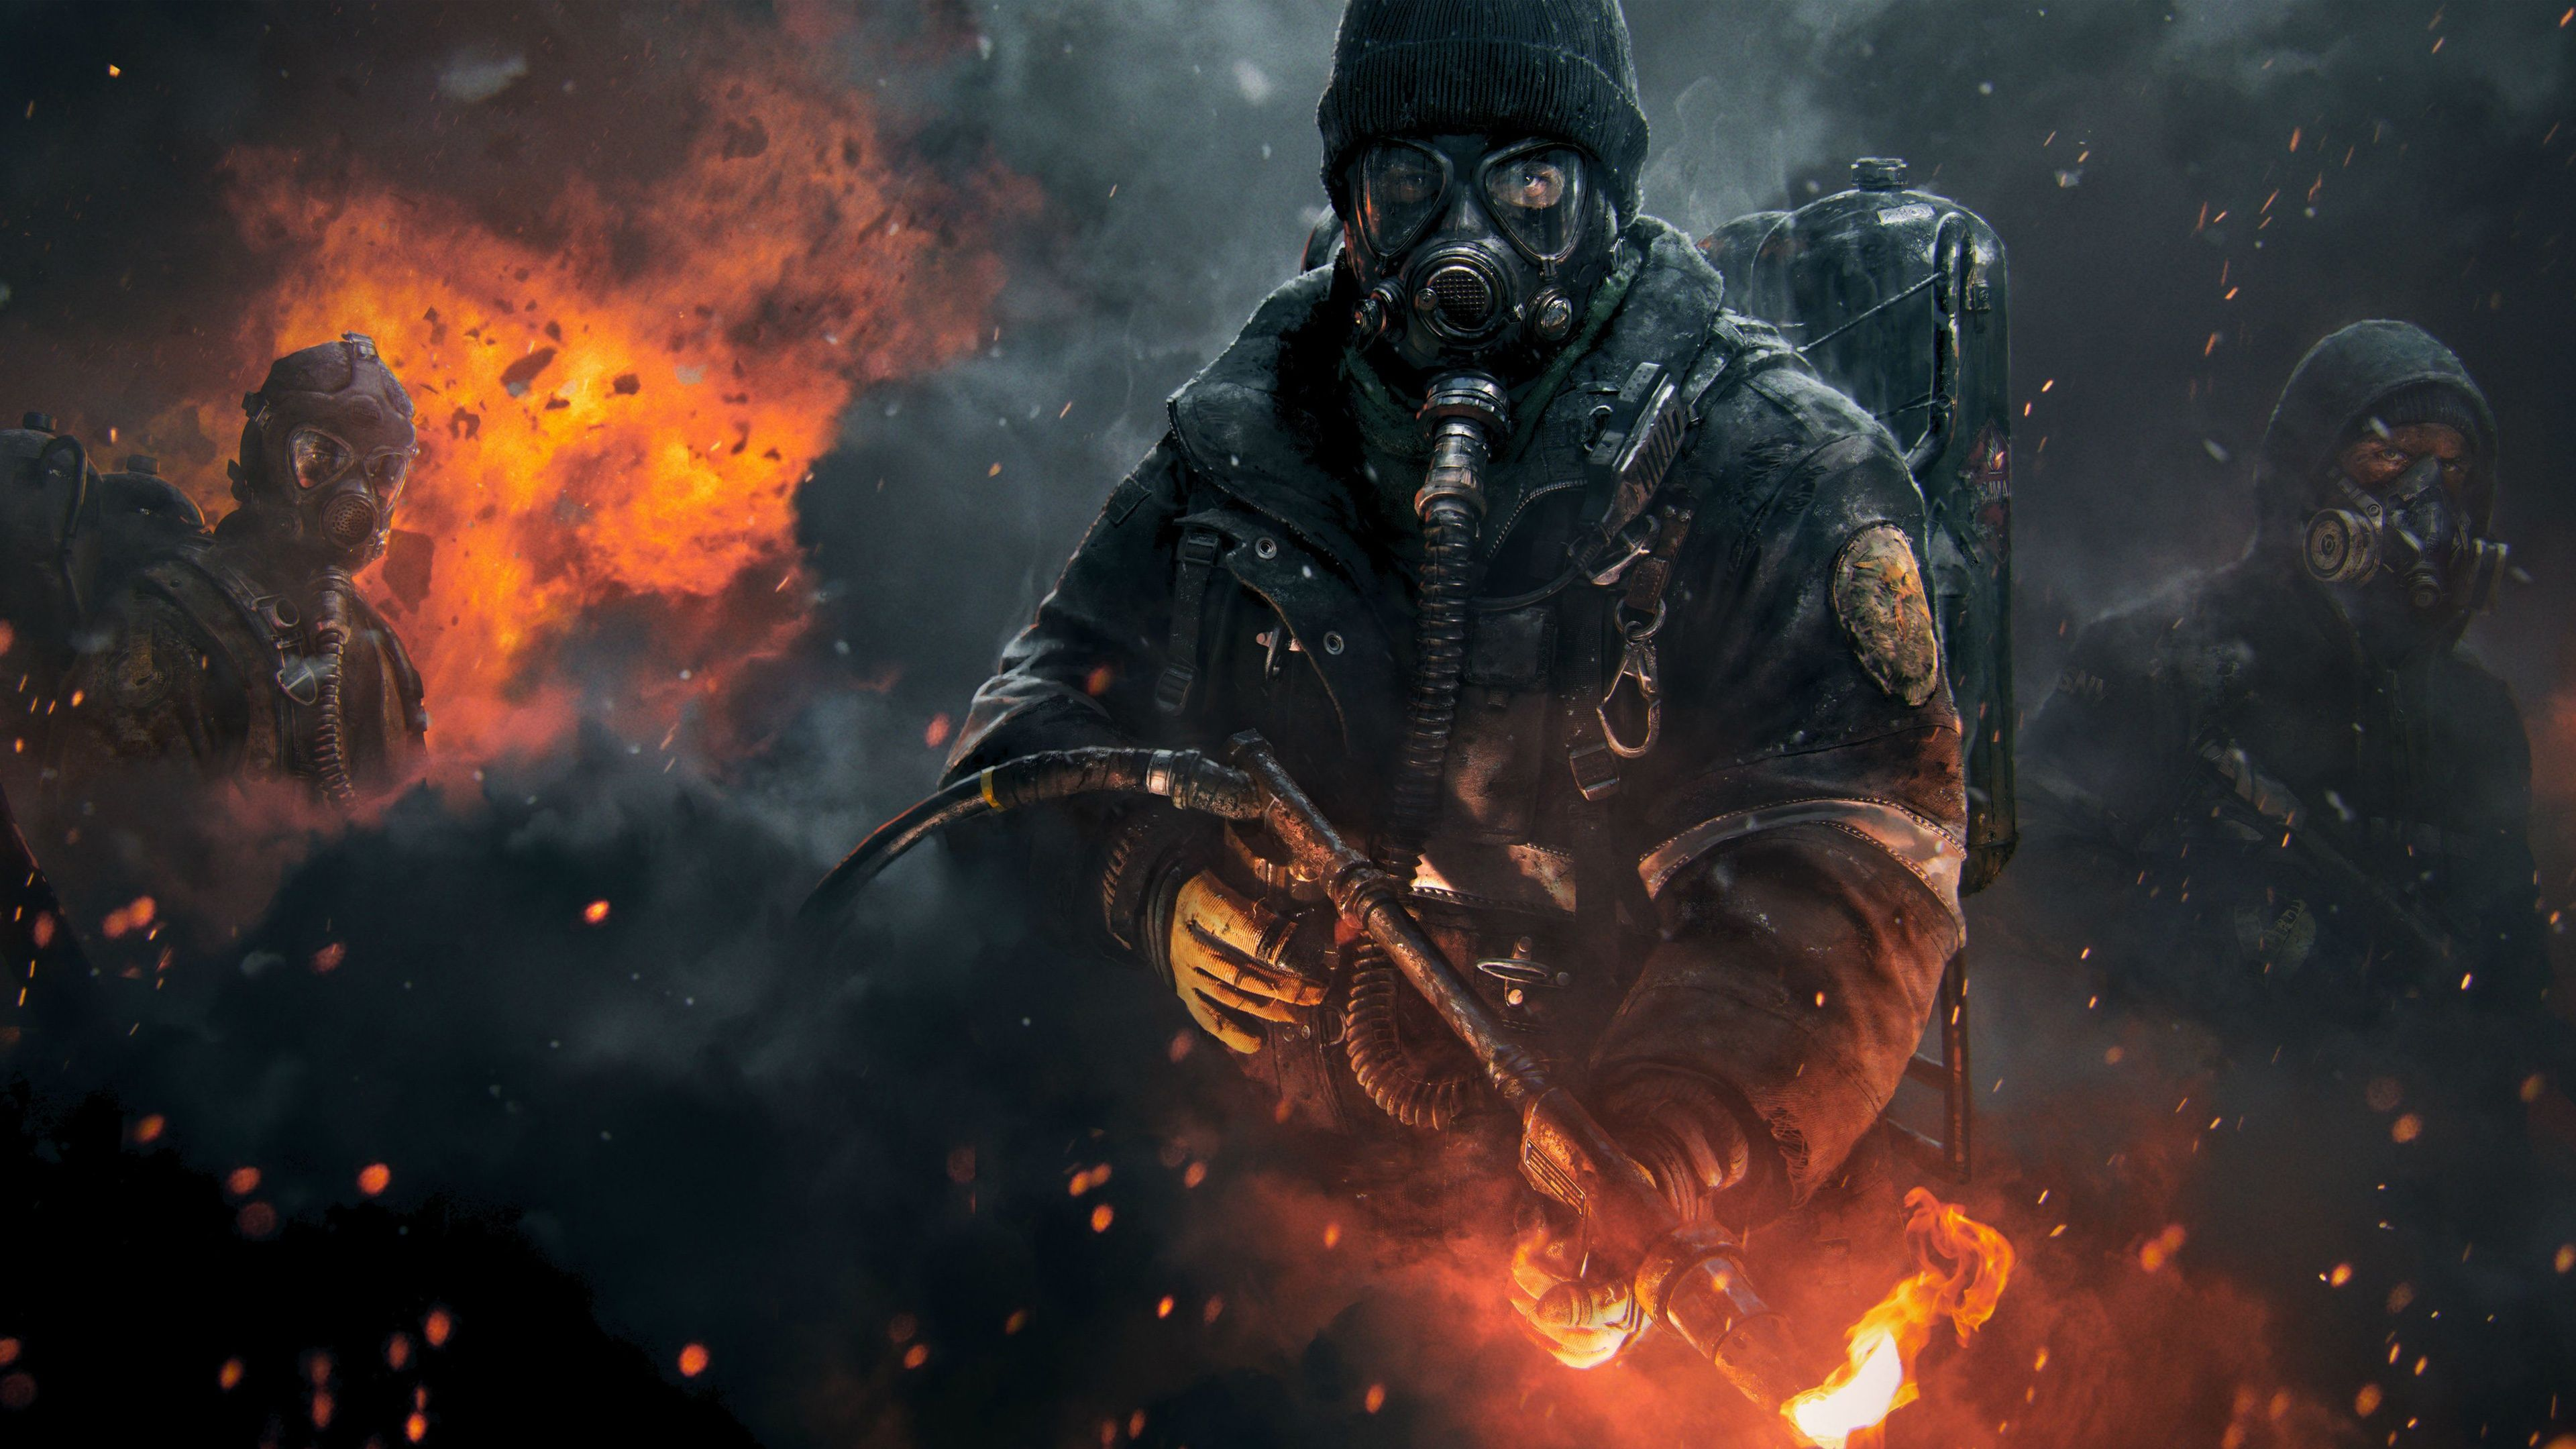 The Division Smoke Dust Dark 4k Gaming Wallpaper Gaming Wallpapers Gaming Wallpapers Hd